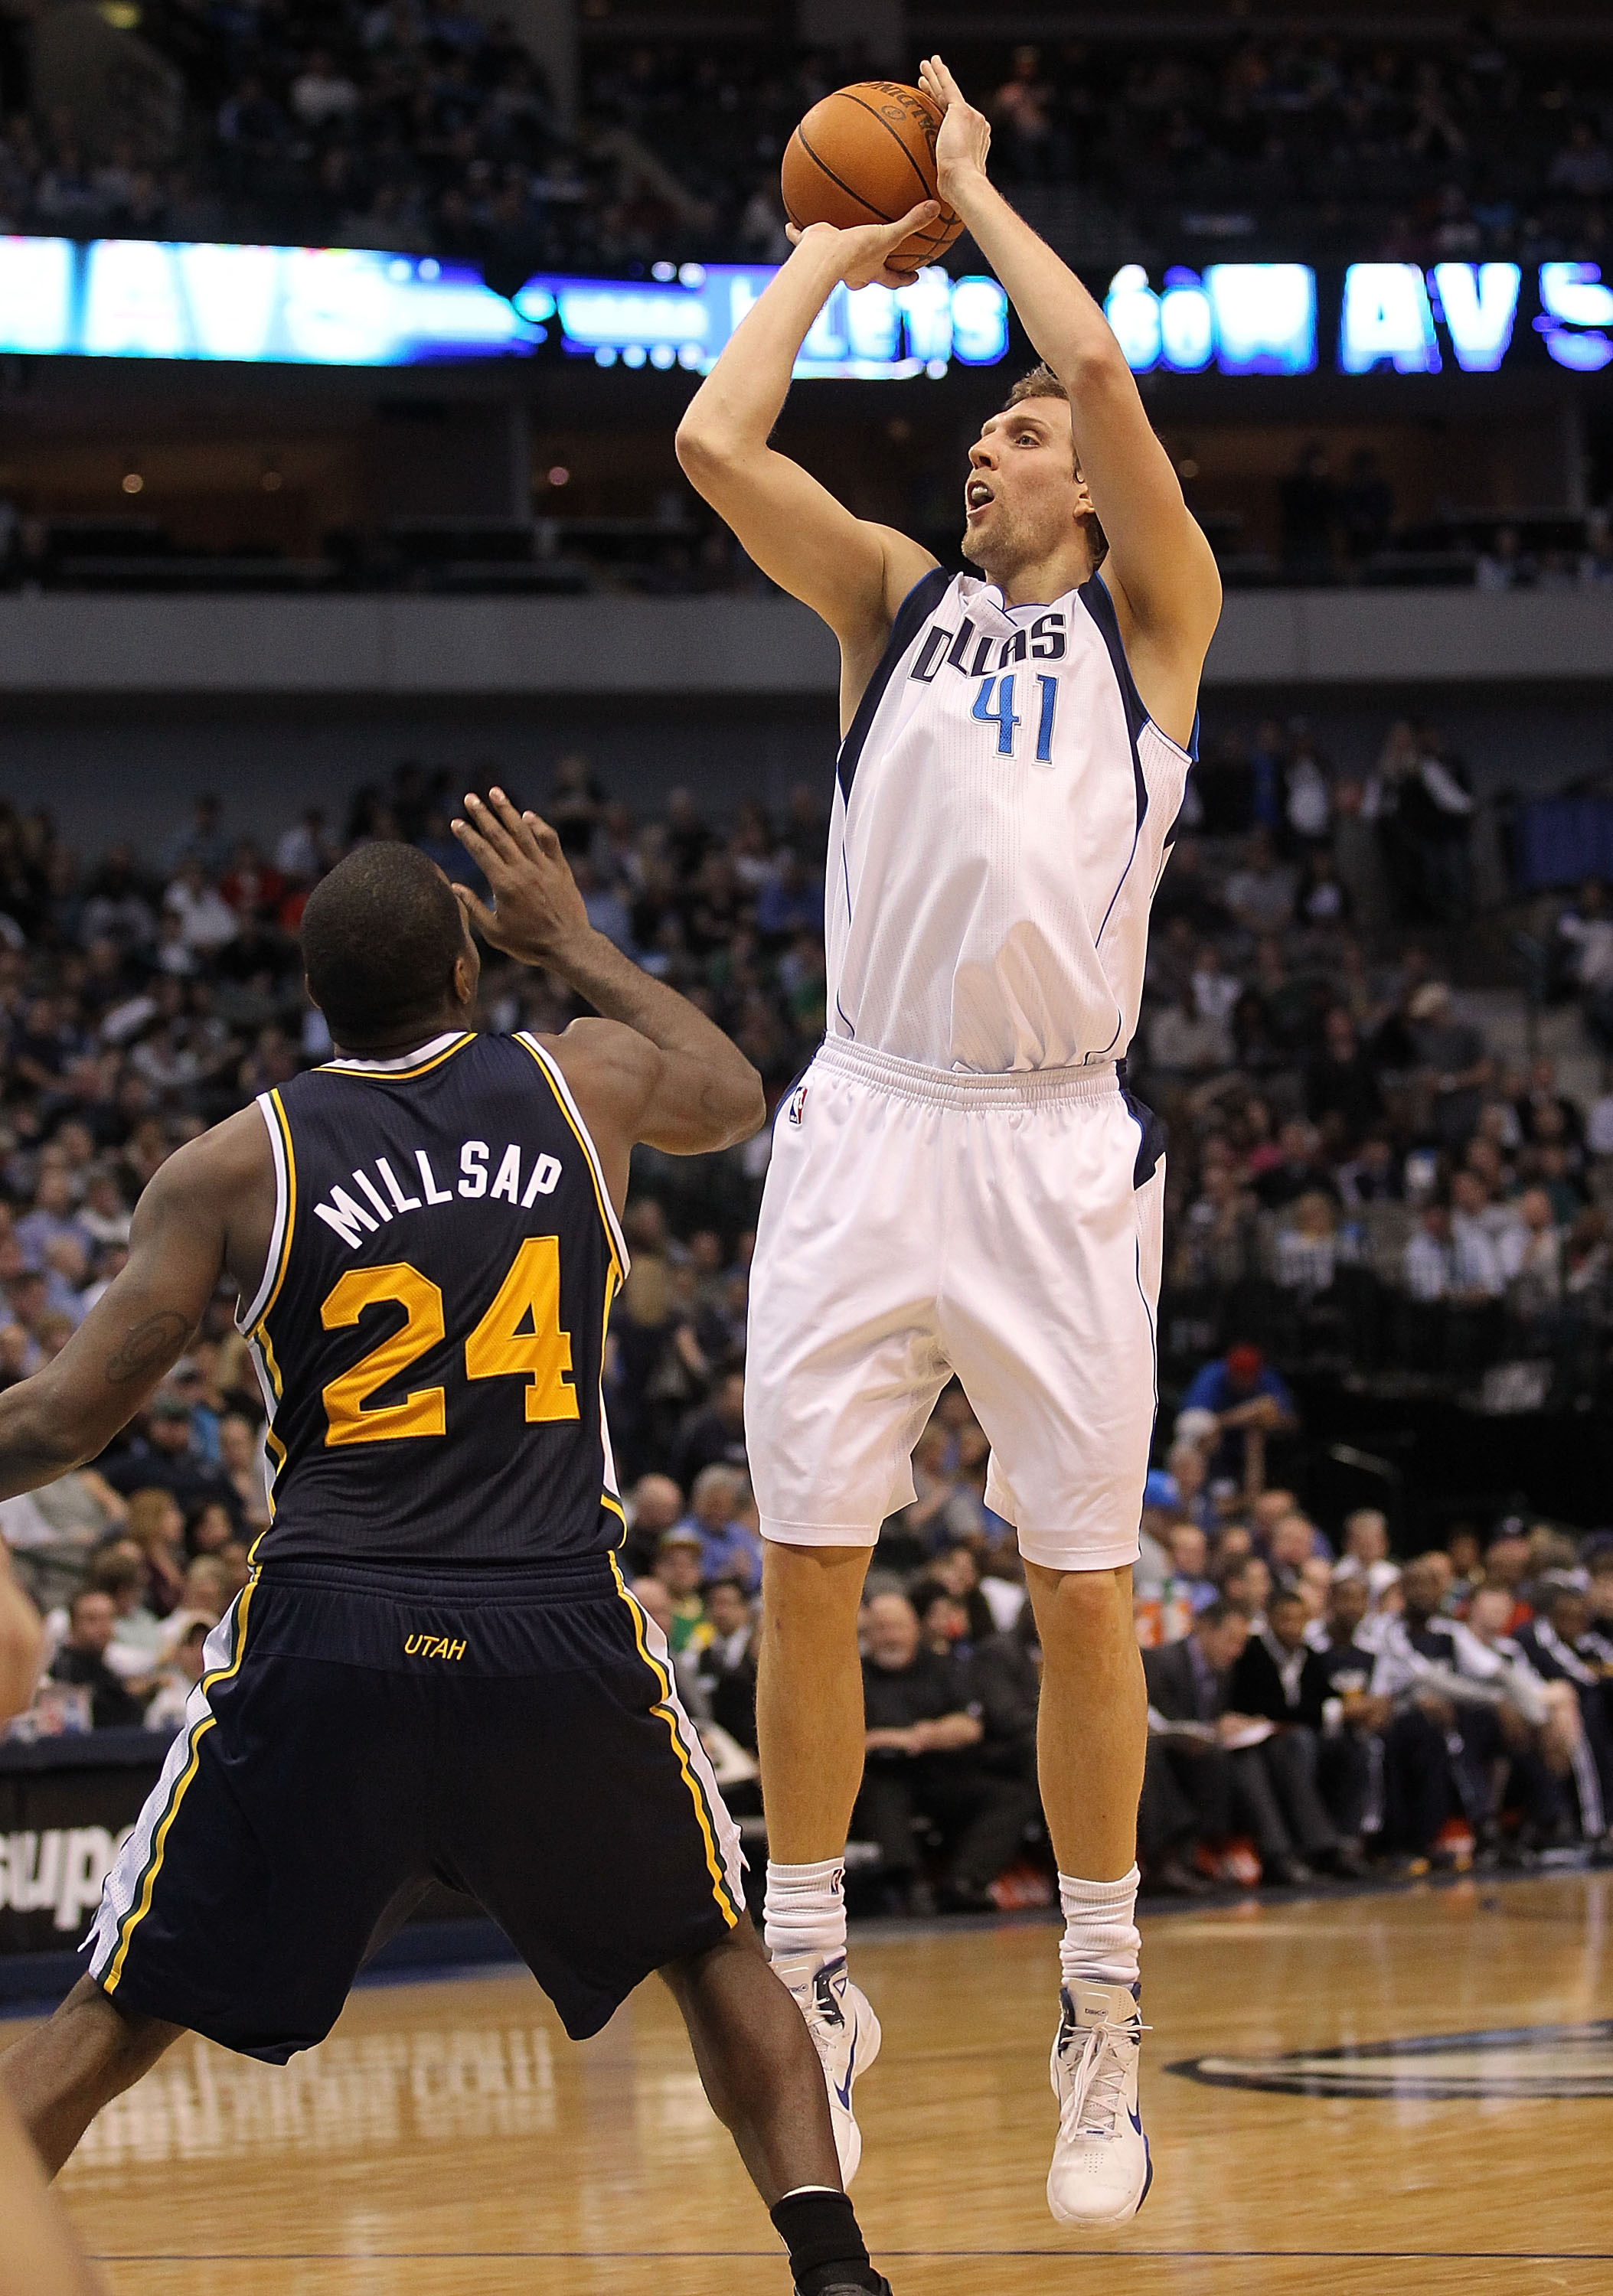 DALLAS, TX - FEBRUARY 23:  Forward Dirk Nowitzki #41 of the Dallas Mavericks takes a shot against Paul Millsap #24 of the Utah Jazz at American Airlines Center on February 23, 2011 in Dallas, Texas.  NOTE TO USER: User expressly acknowledges and agrees th